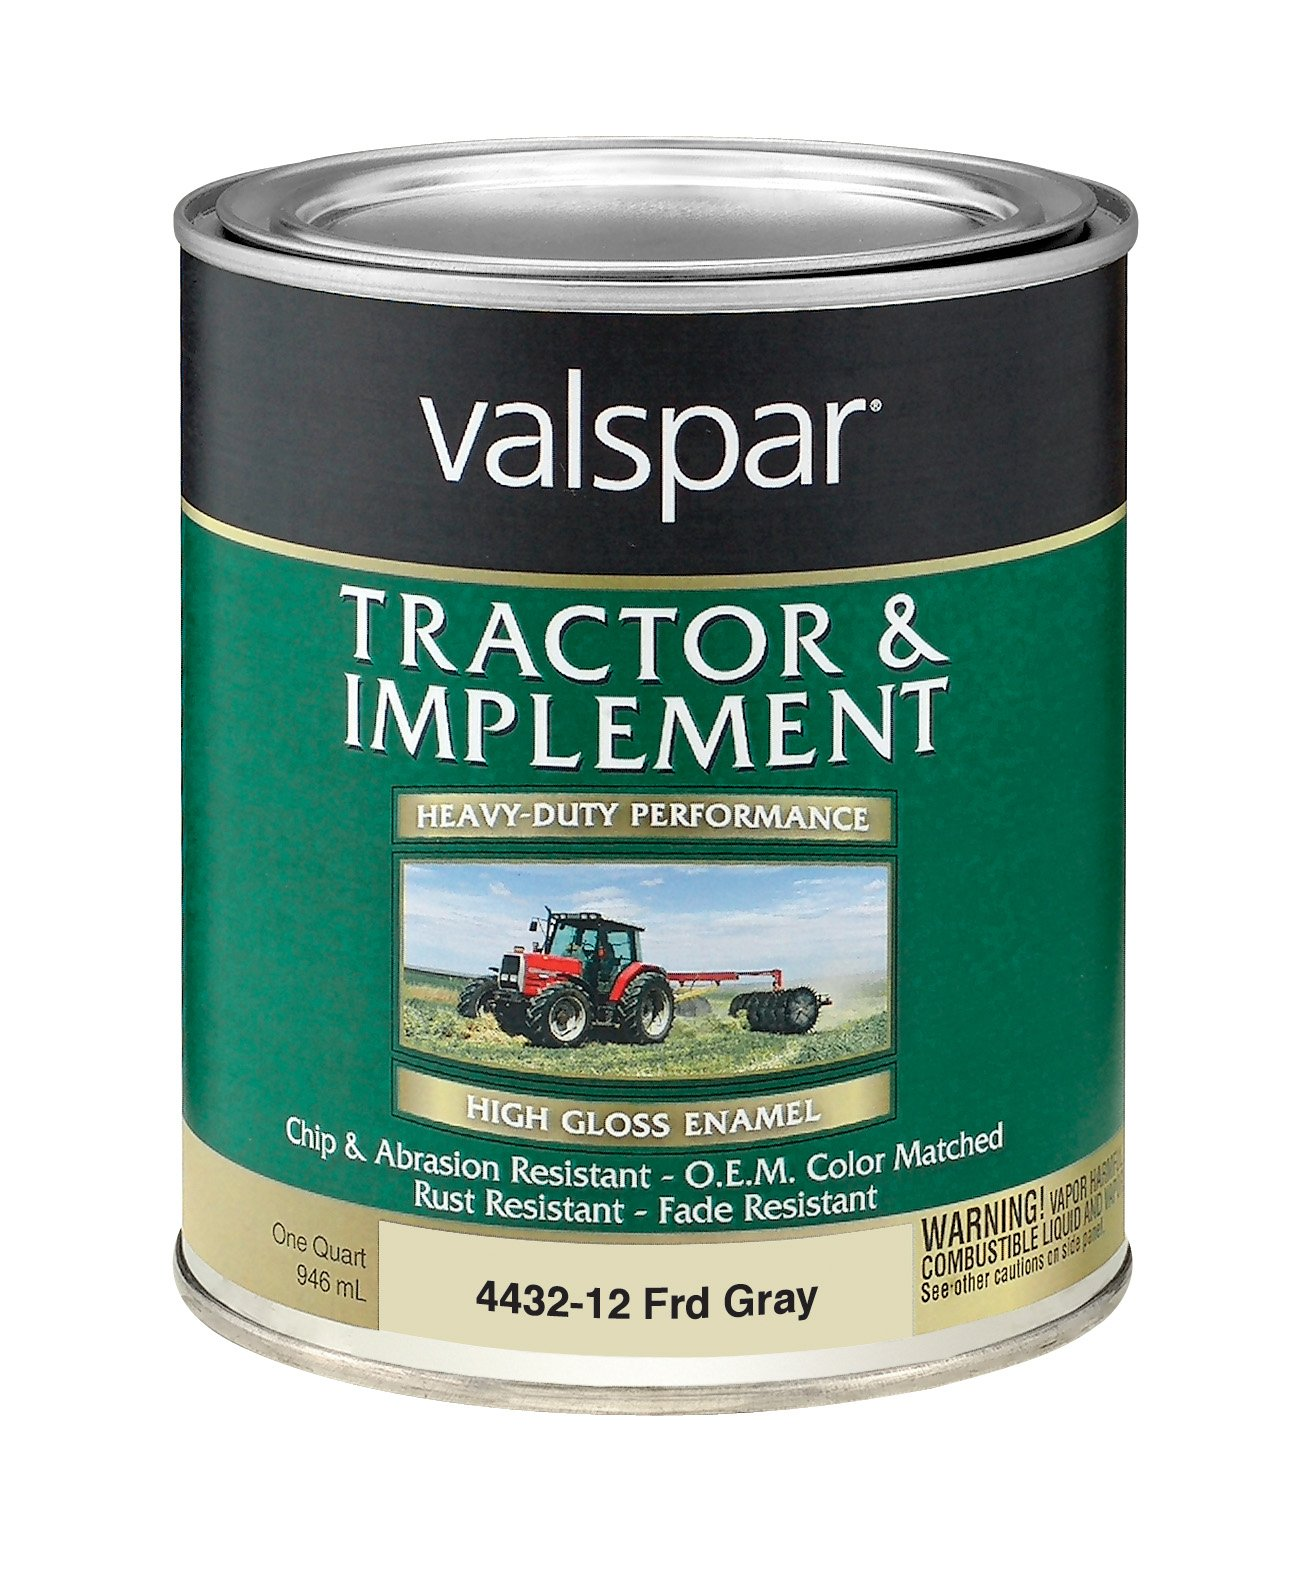 Valspar 4432-13 Ford Gray Tractor and Implement Paint - 1 Quart